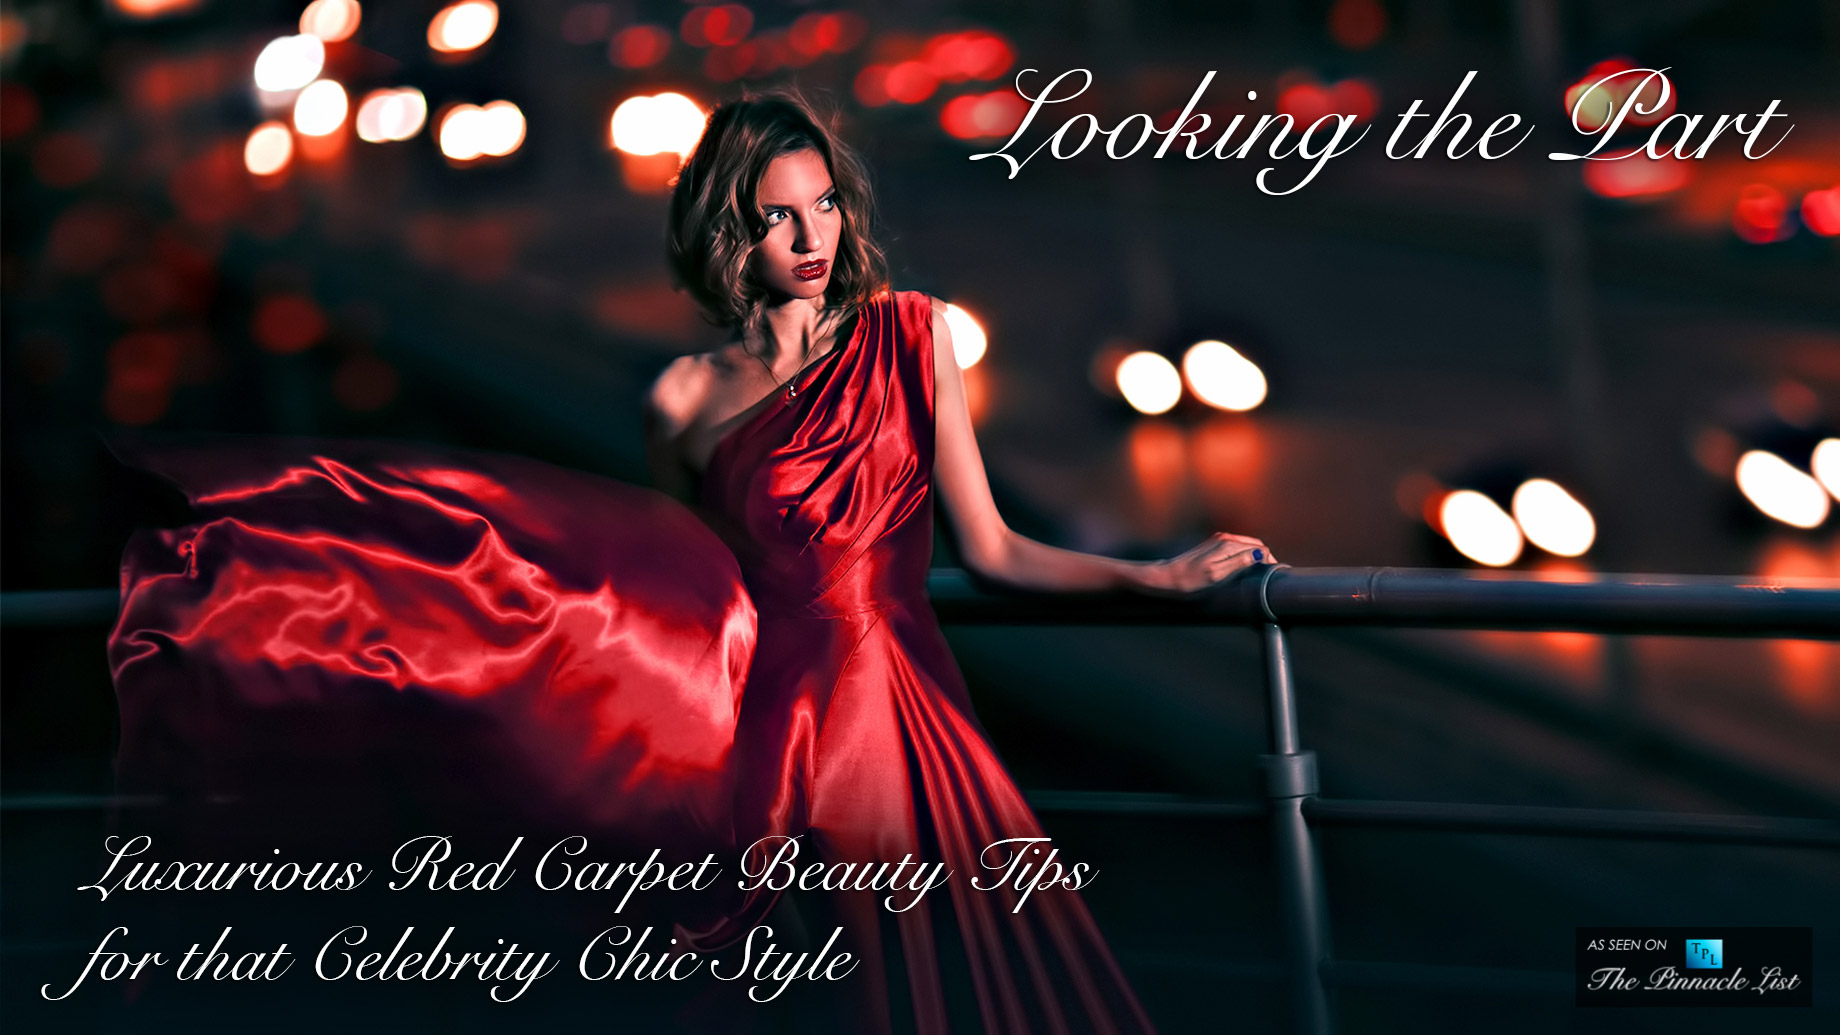 Looking the Part - Luxurious Red Carpet Beauty Tips for that Celebrity Chic Style